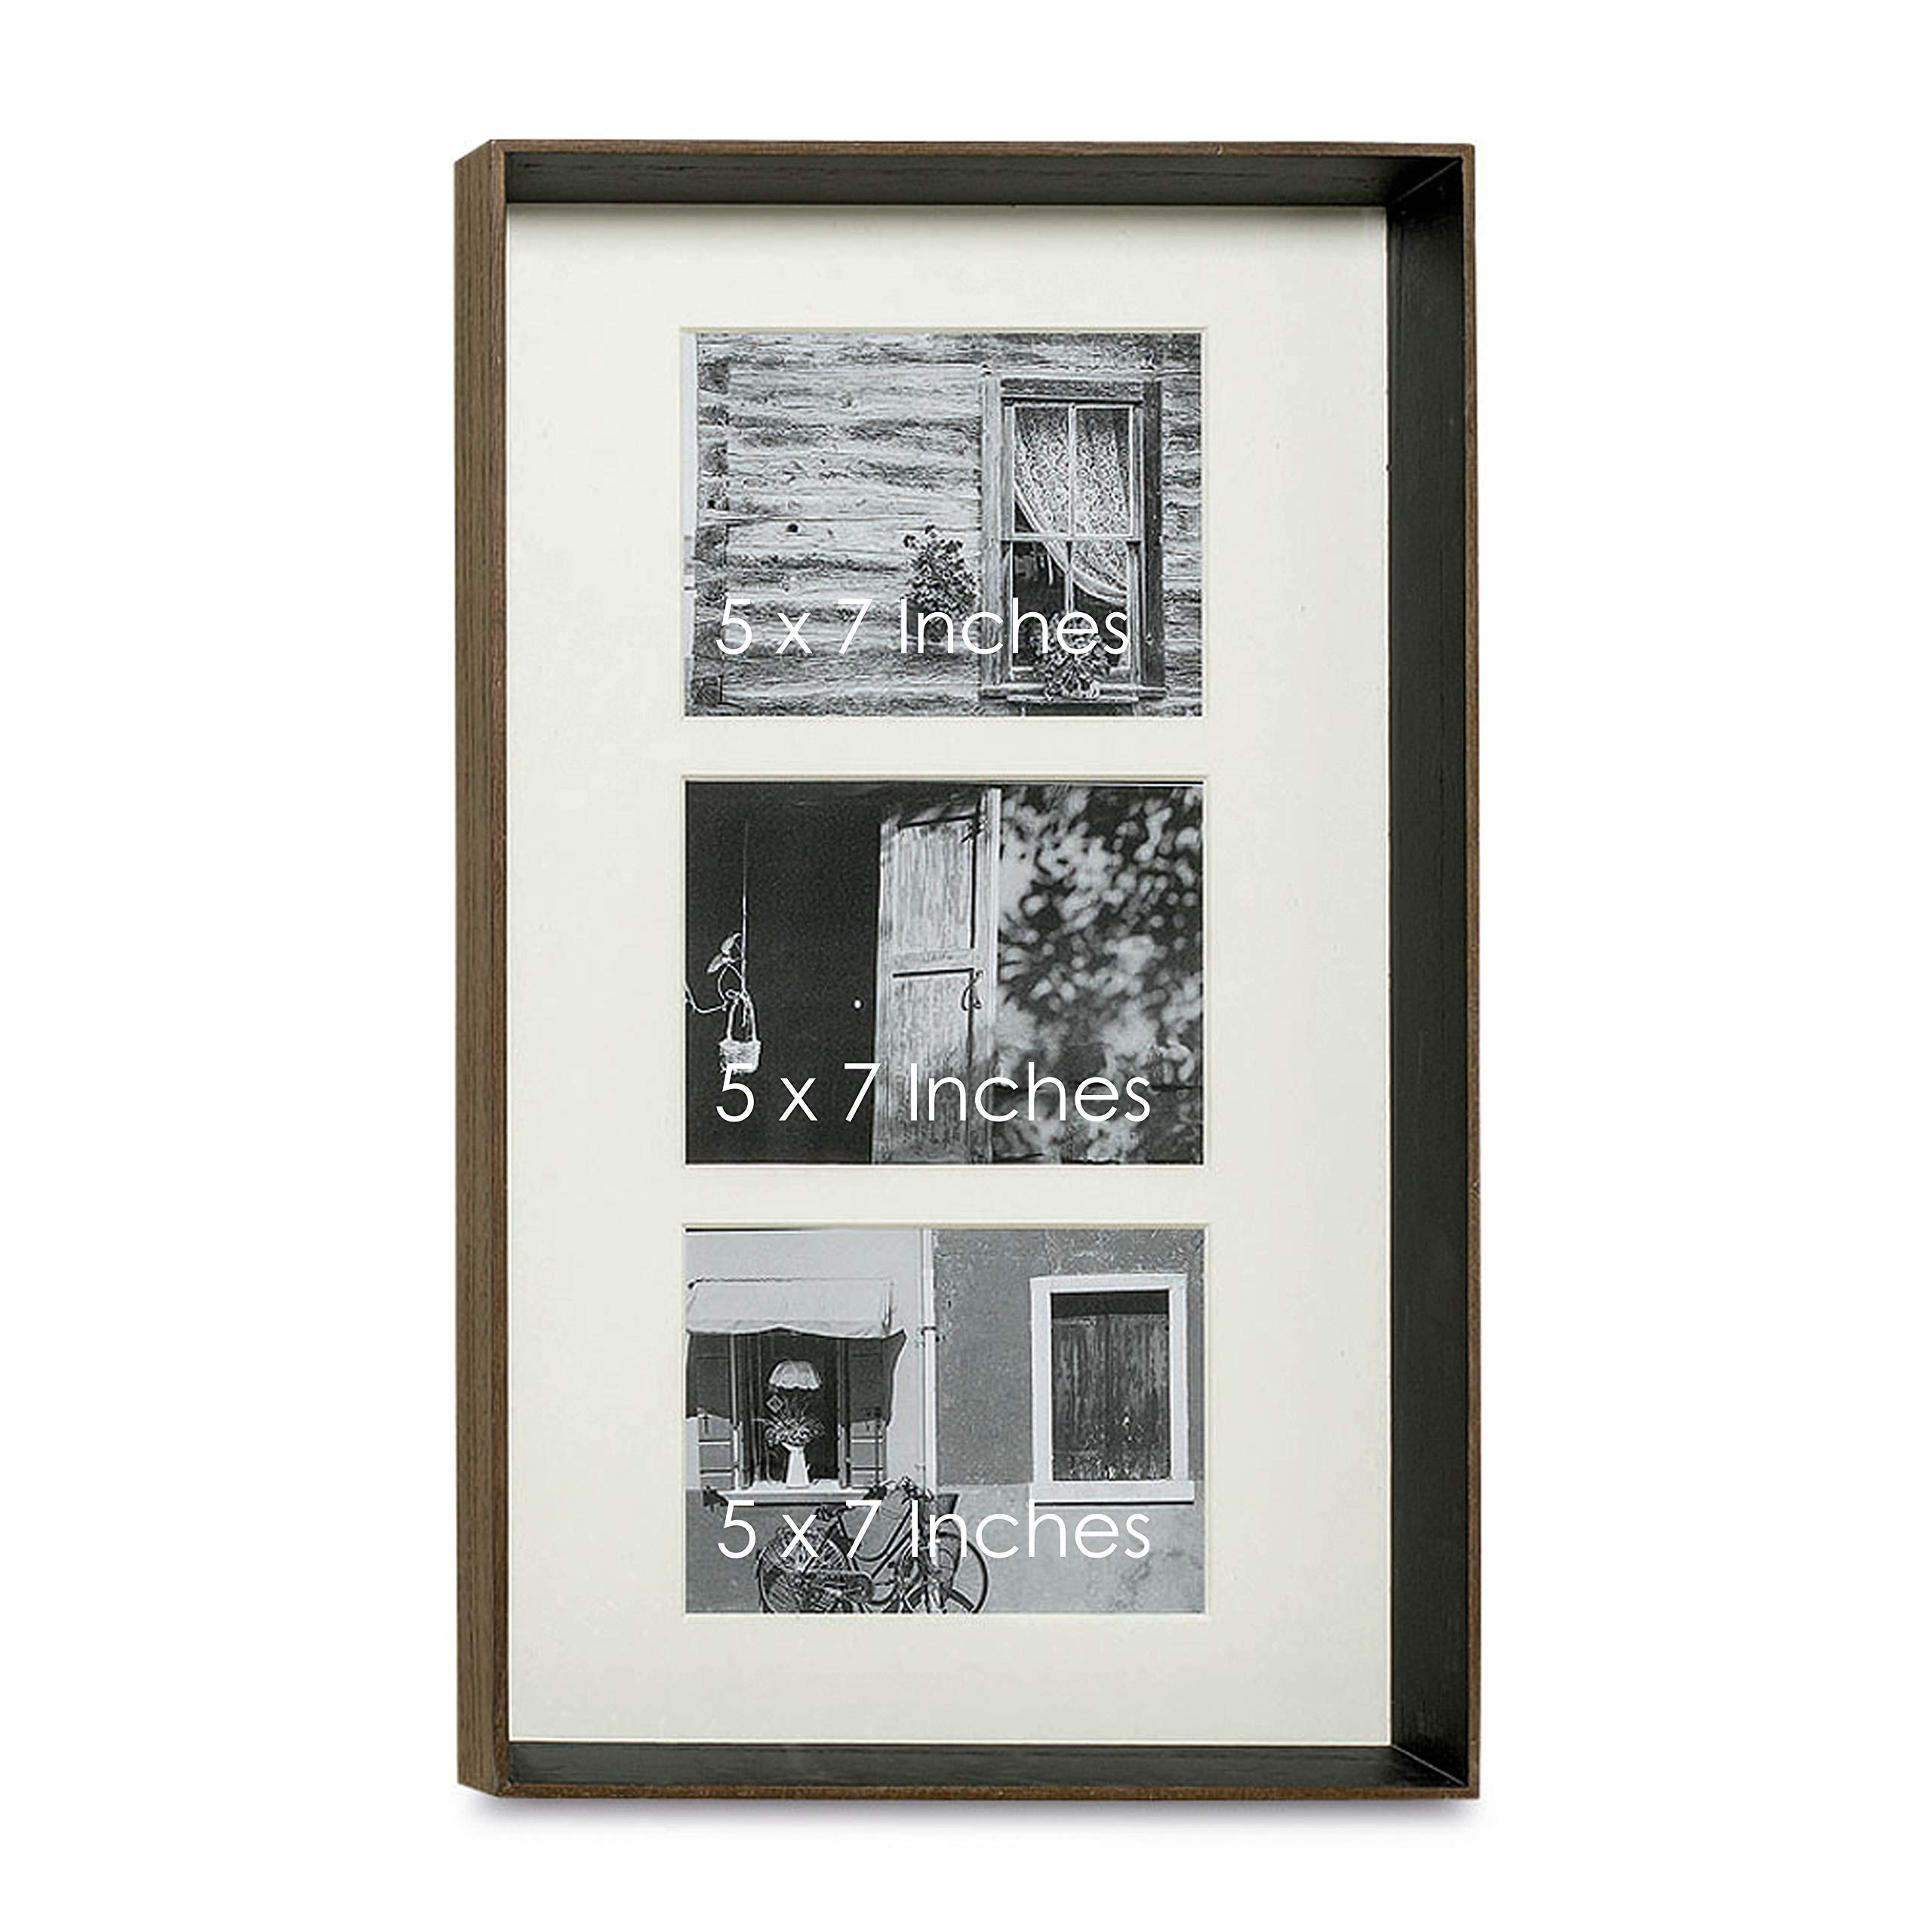 The Chelsea Art Gallery Frame, For 3 Pictures, Double Window Bevel Cut Ivory Matte, Each Opening is 5 x 7 Inches, Quality Solid Wood, Brown and Black. Overall 20 x 12 3/4 Inch Rectangle, By WHW